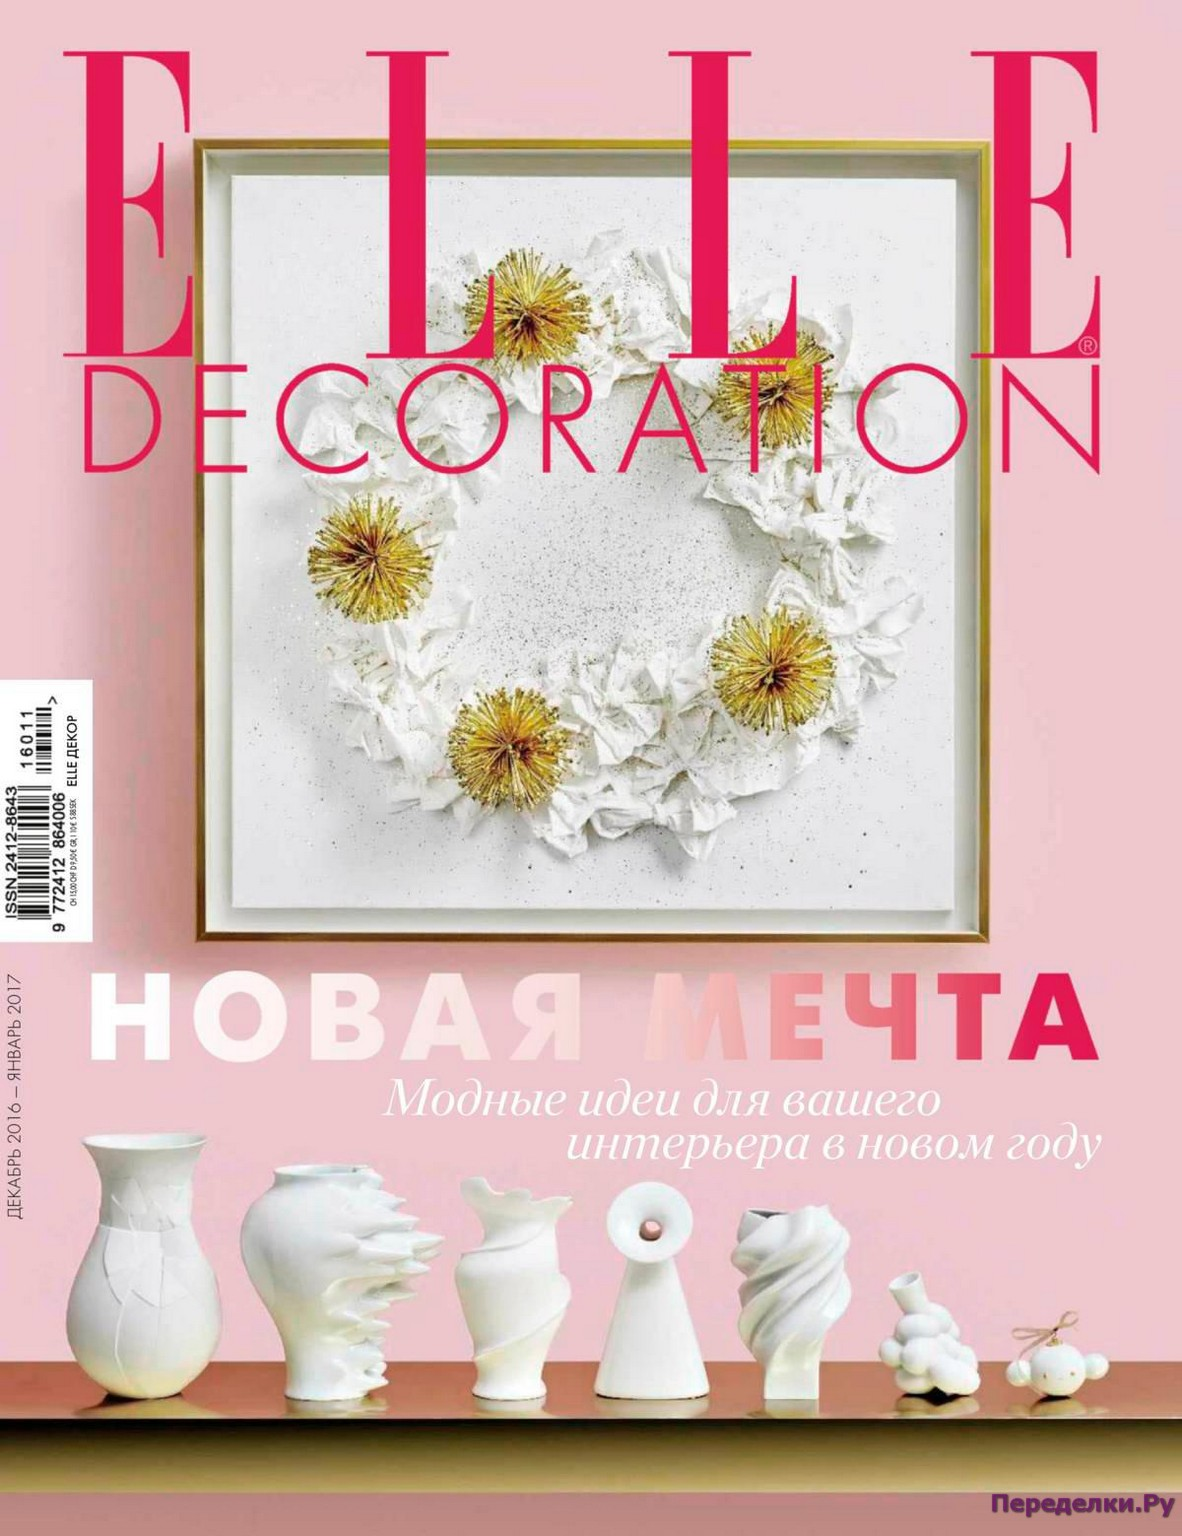 Elle decoration 12-1 2016-2017